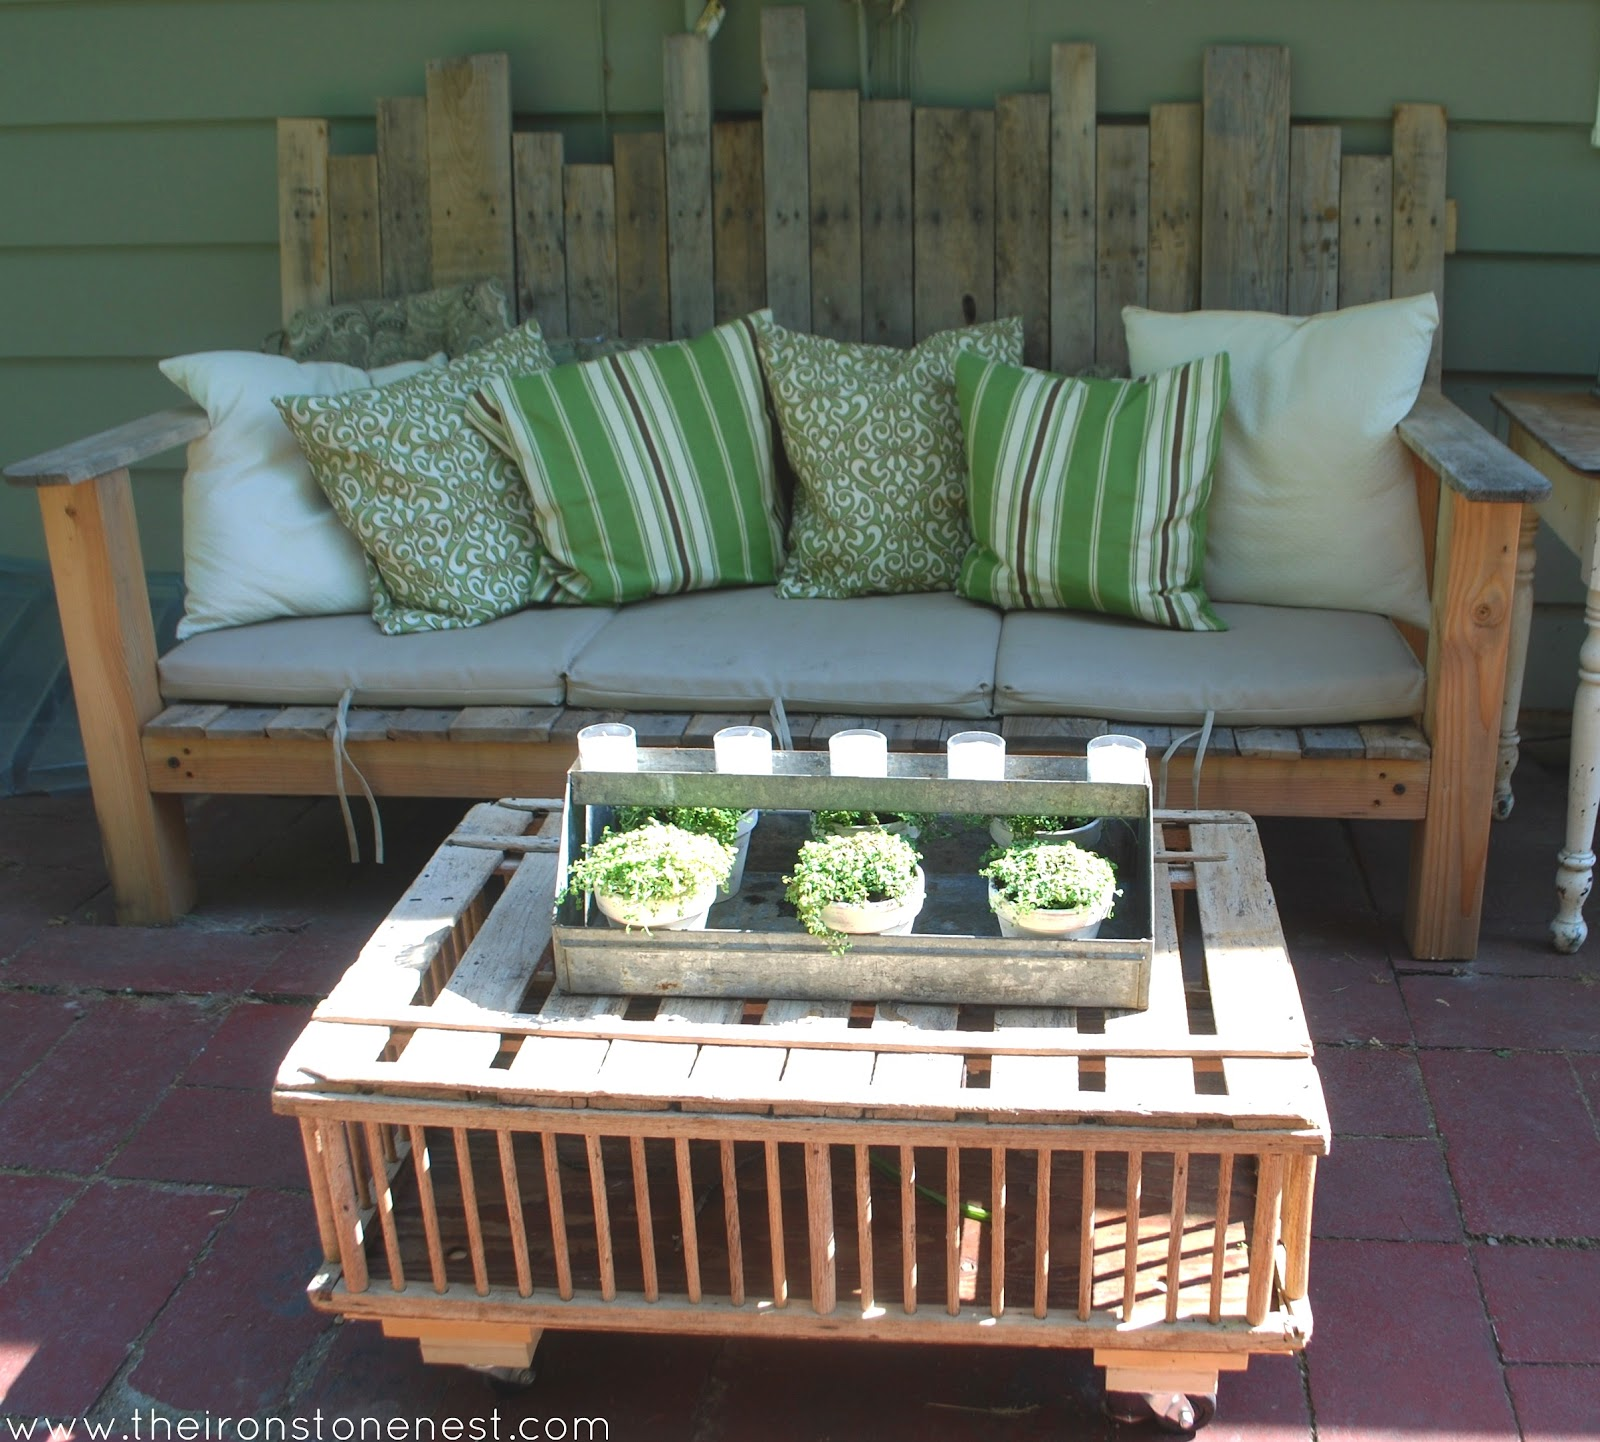 Chicken Crate Coffee Table